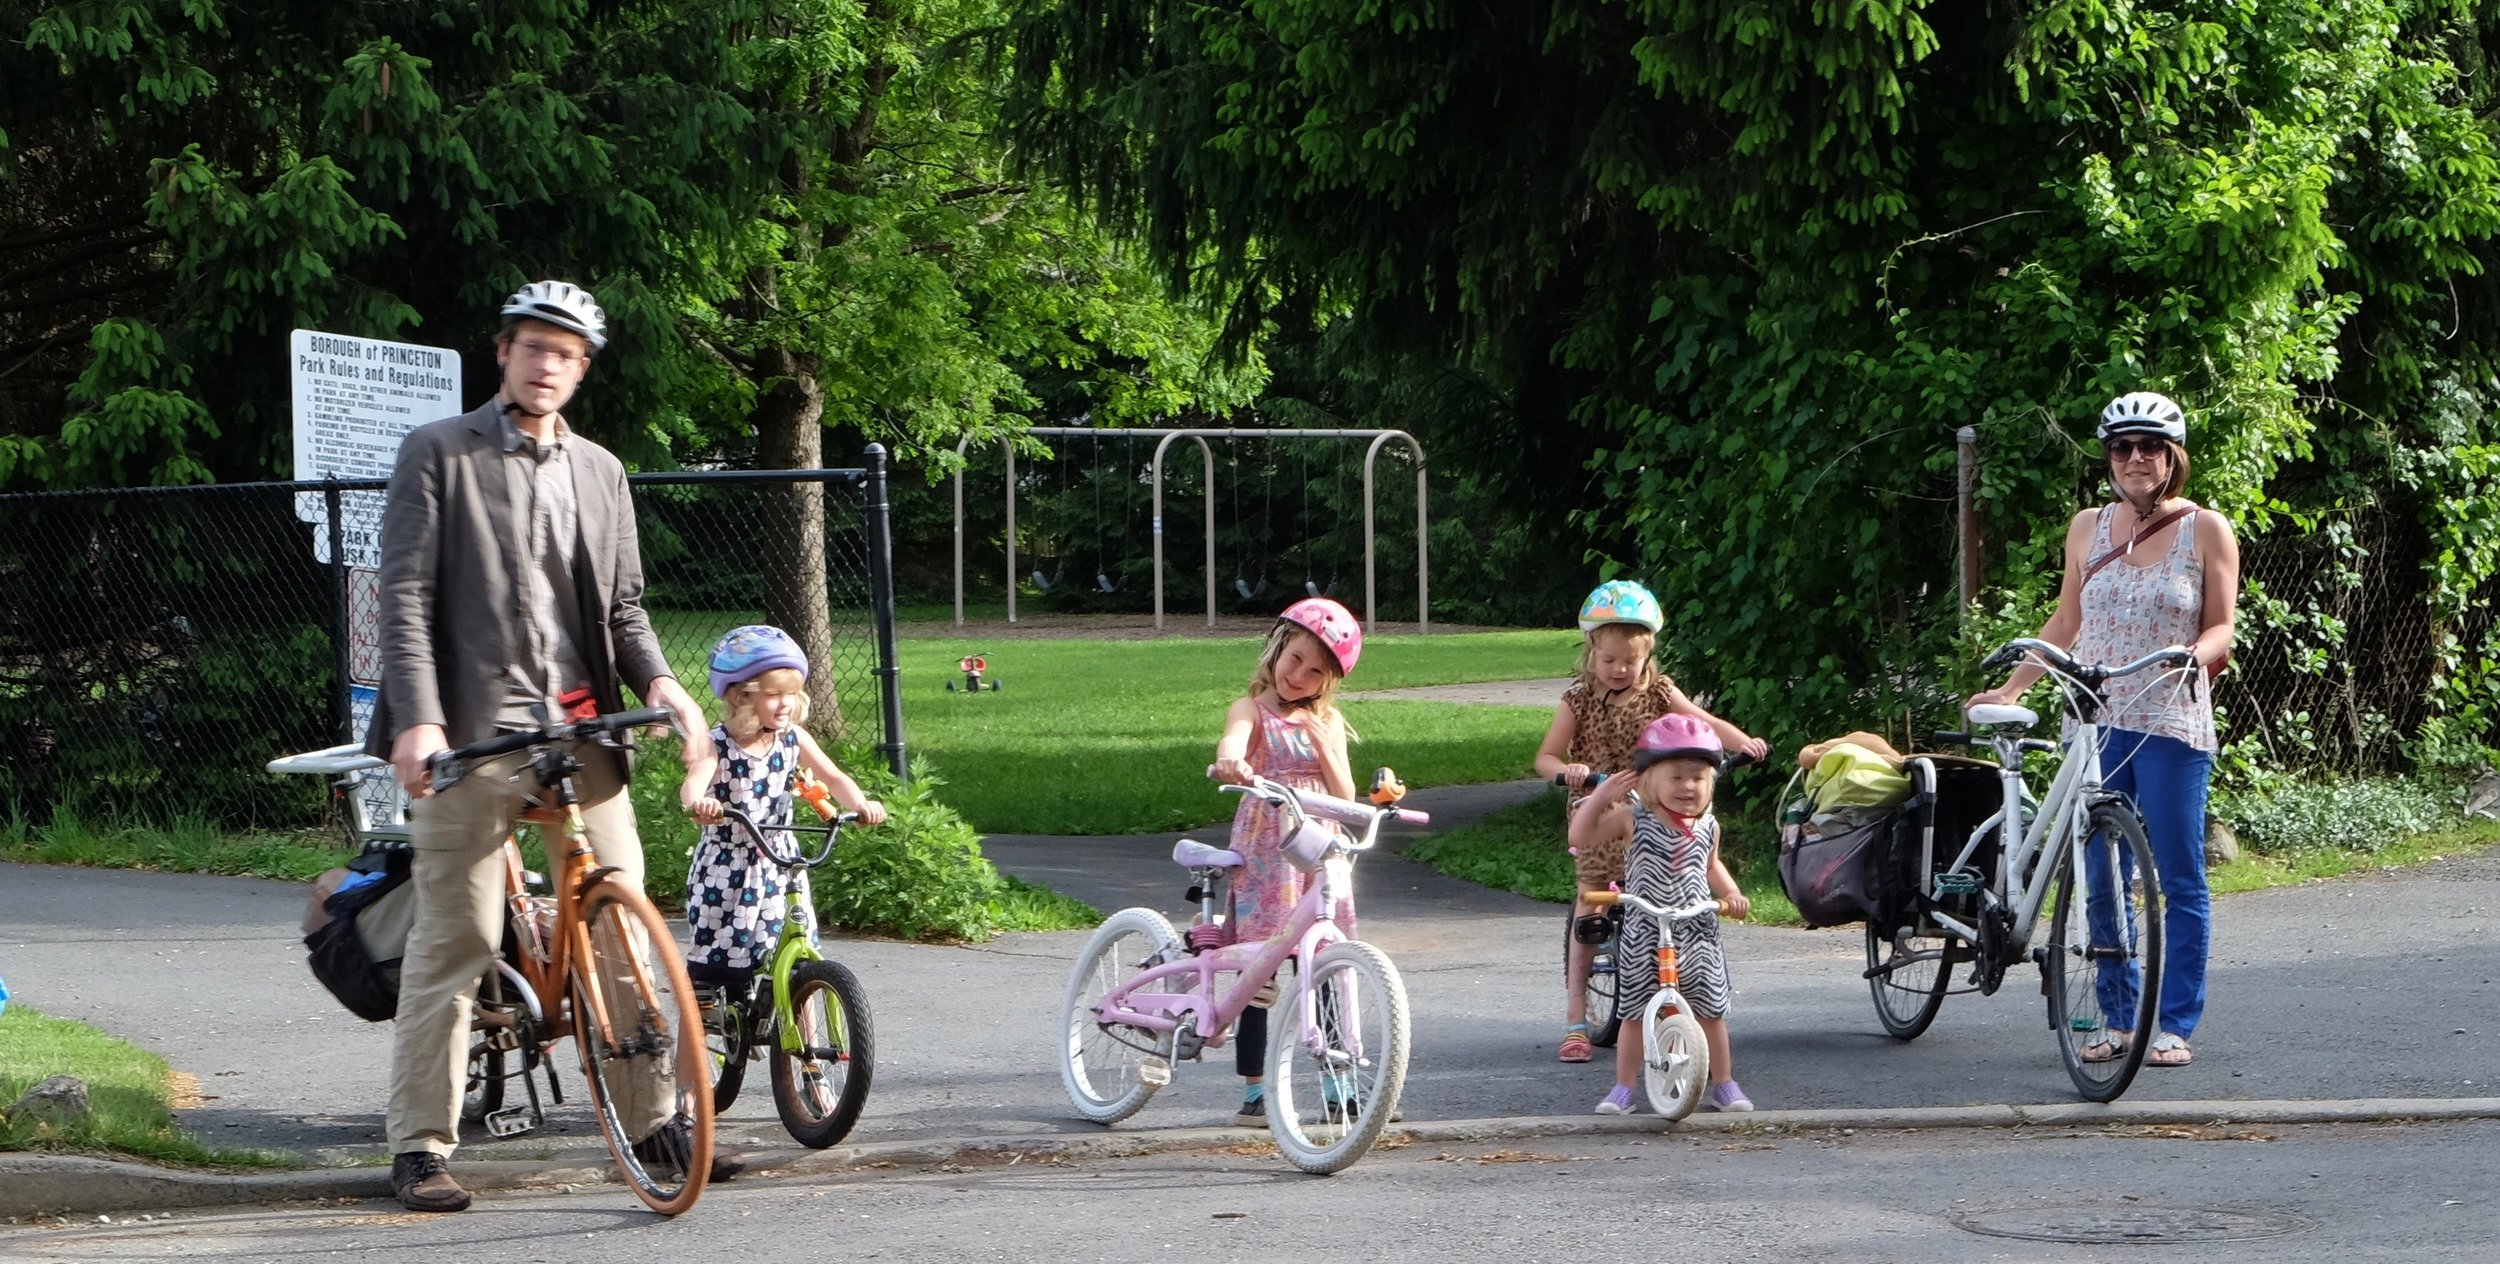 Princeton residents Georgette and Forrest Meggers ride bikes to school with their four young daughters nearly every day.